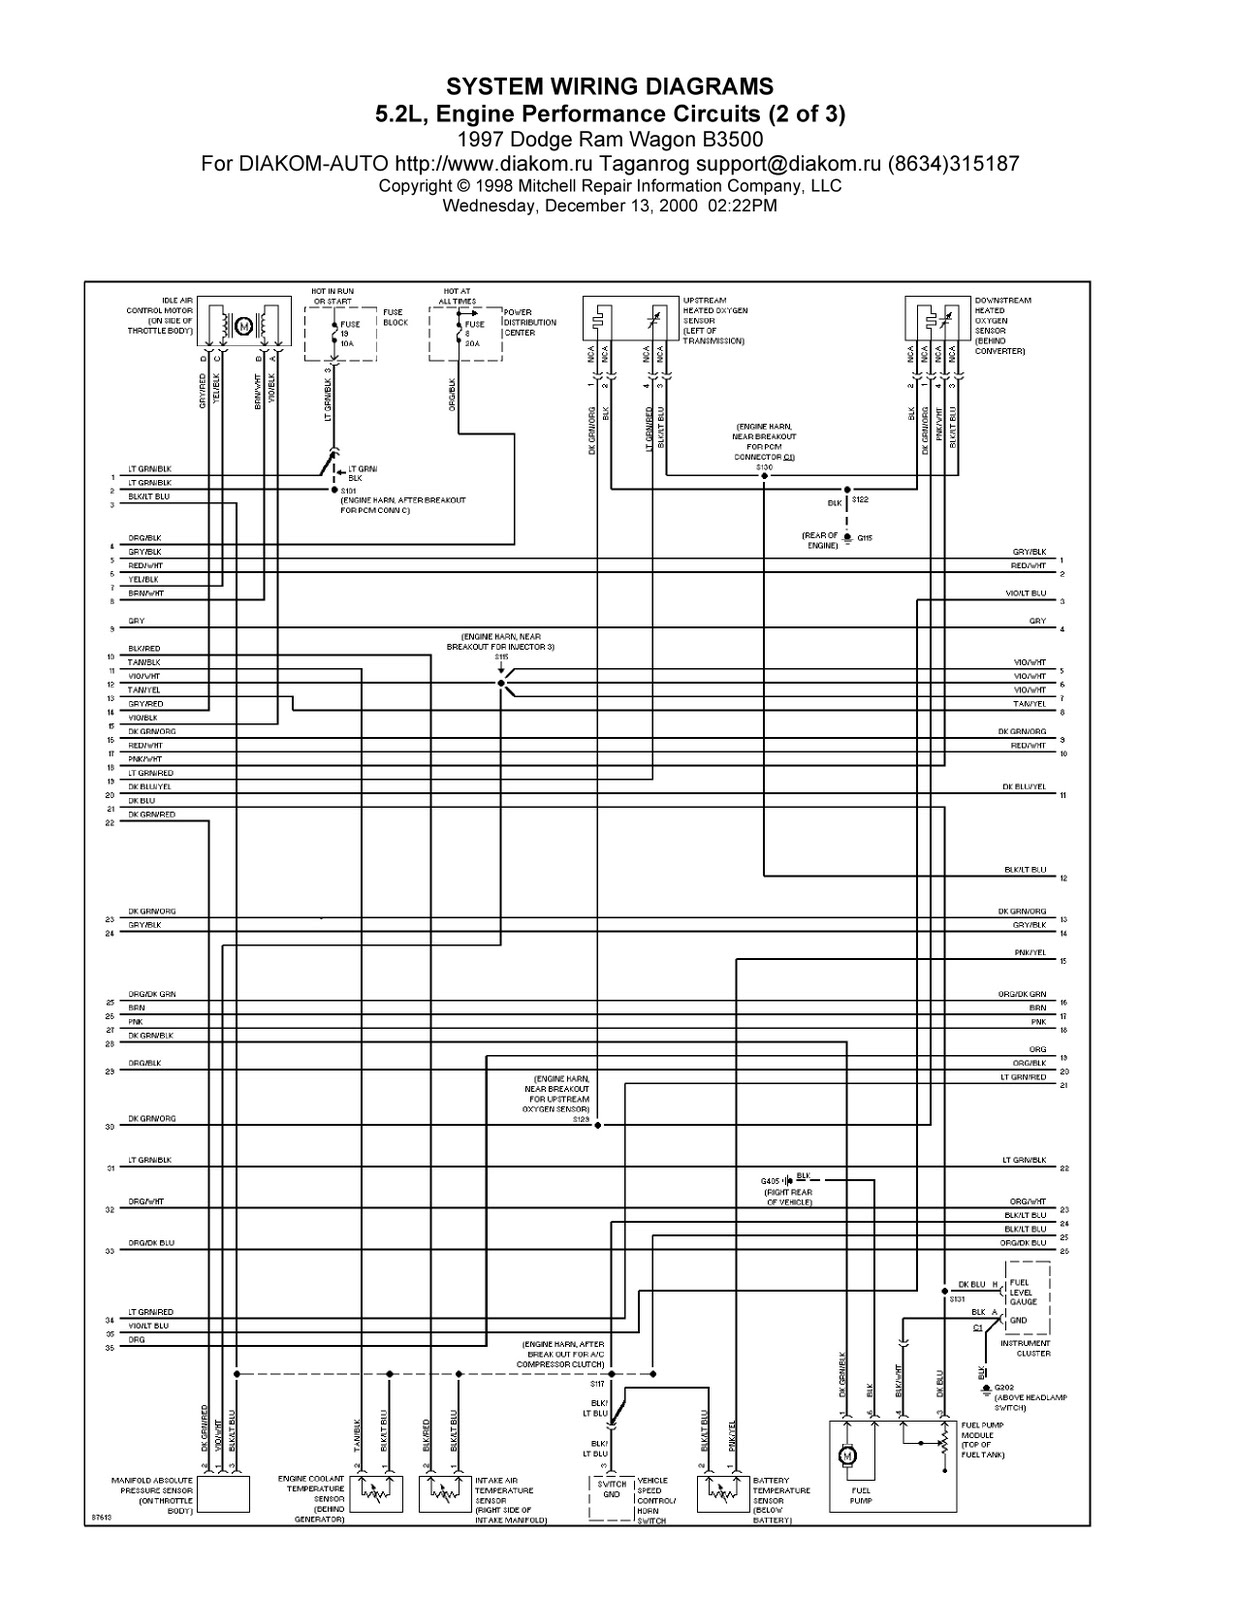 97 Dodge Ram Wiring Diagram Library 98 1500 Radio Wire 1997 Wagon B3500 System 5 2l